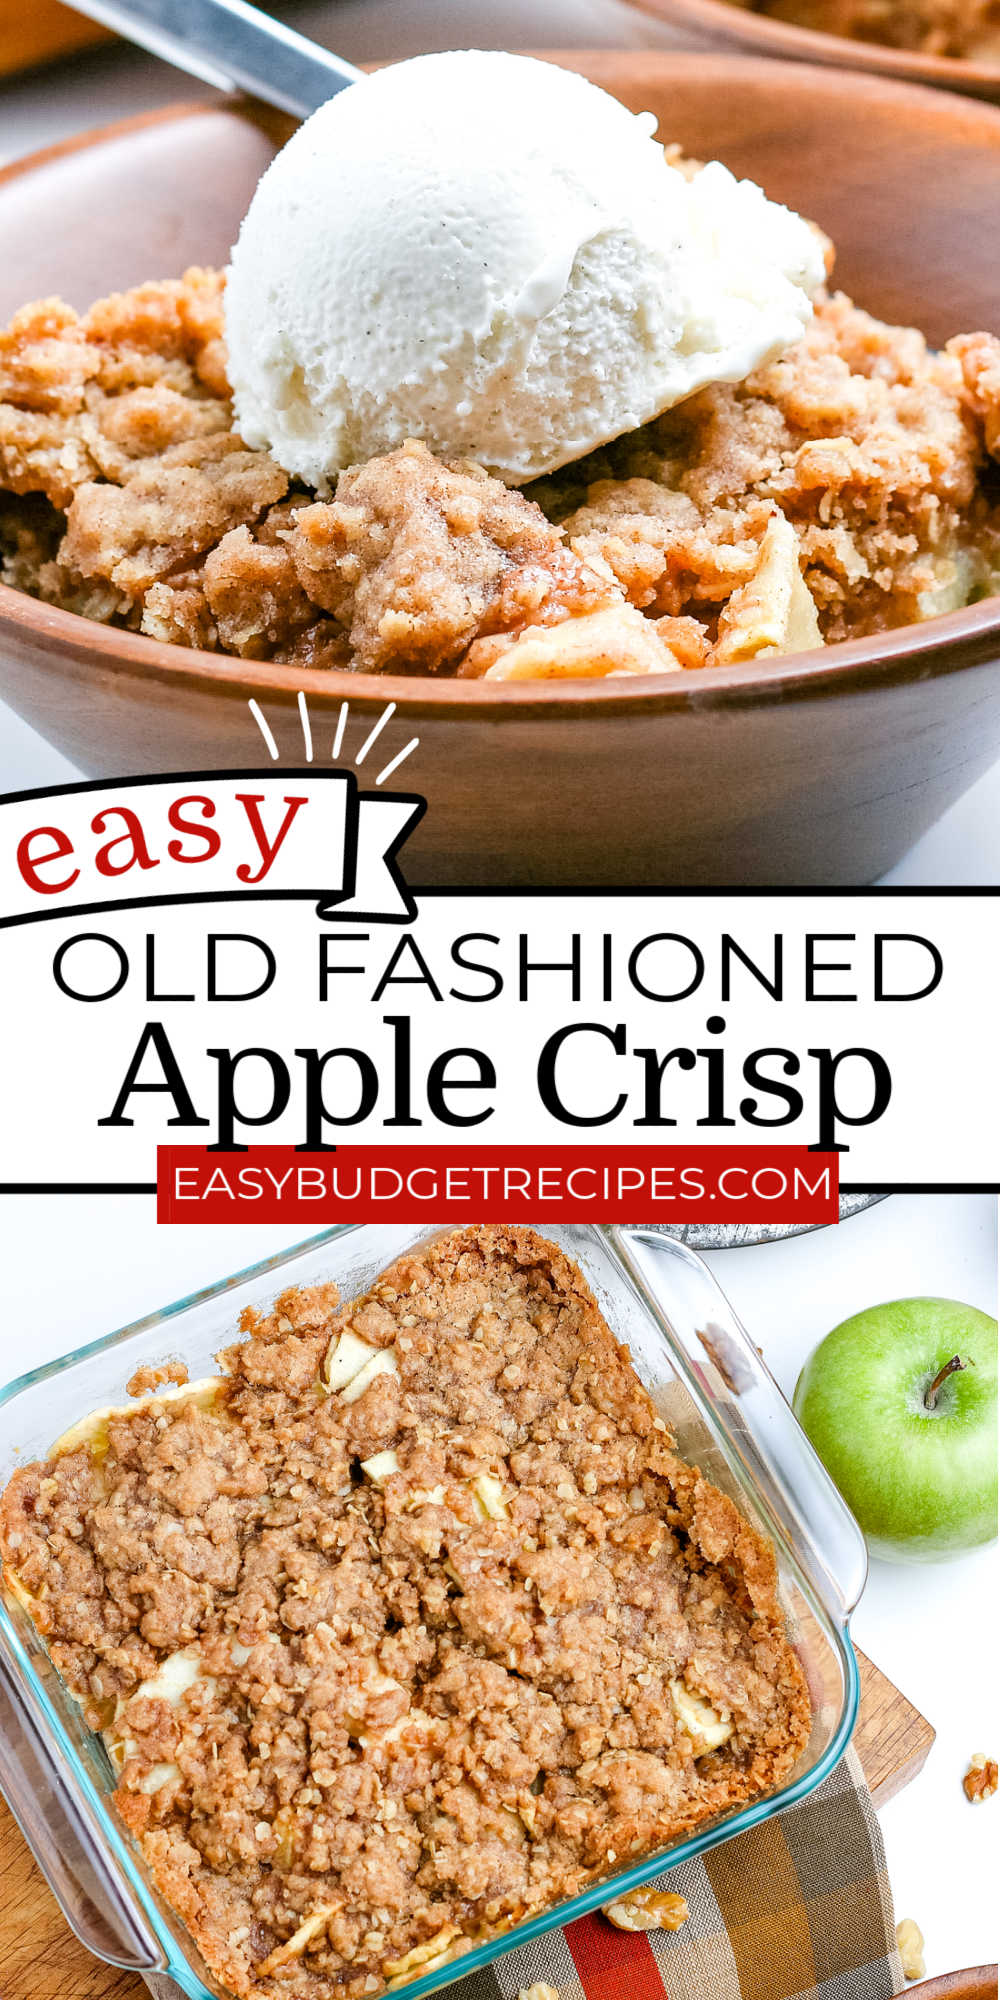 This Easy Apple Crisp is a fall comfort food classic for a reason. The warm baked apples and crisp, buttery topping are perfection. Add a scoop of ice cream and caramel sauce for an extra special treat.  via @easybudgetrecipes